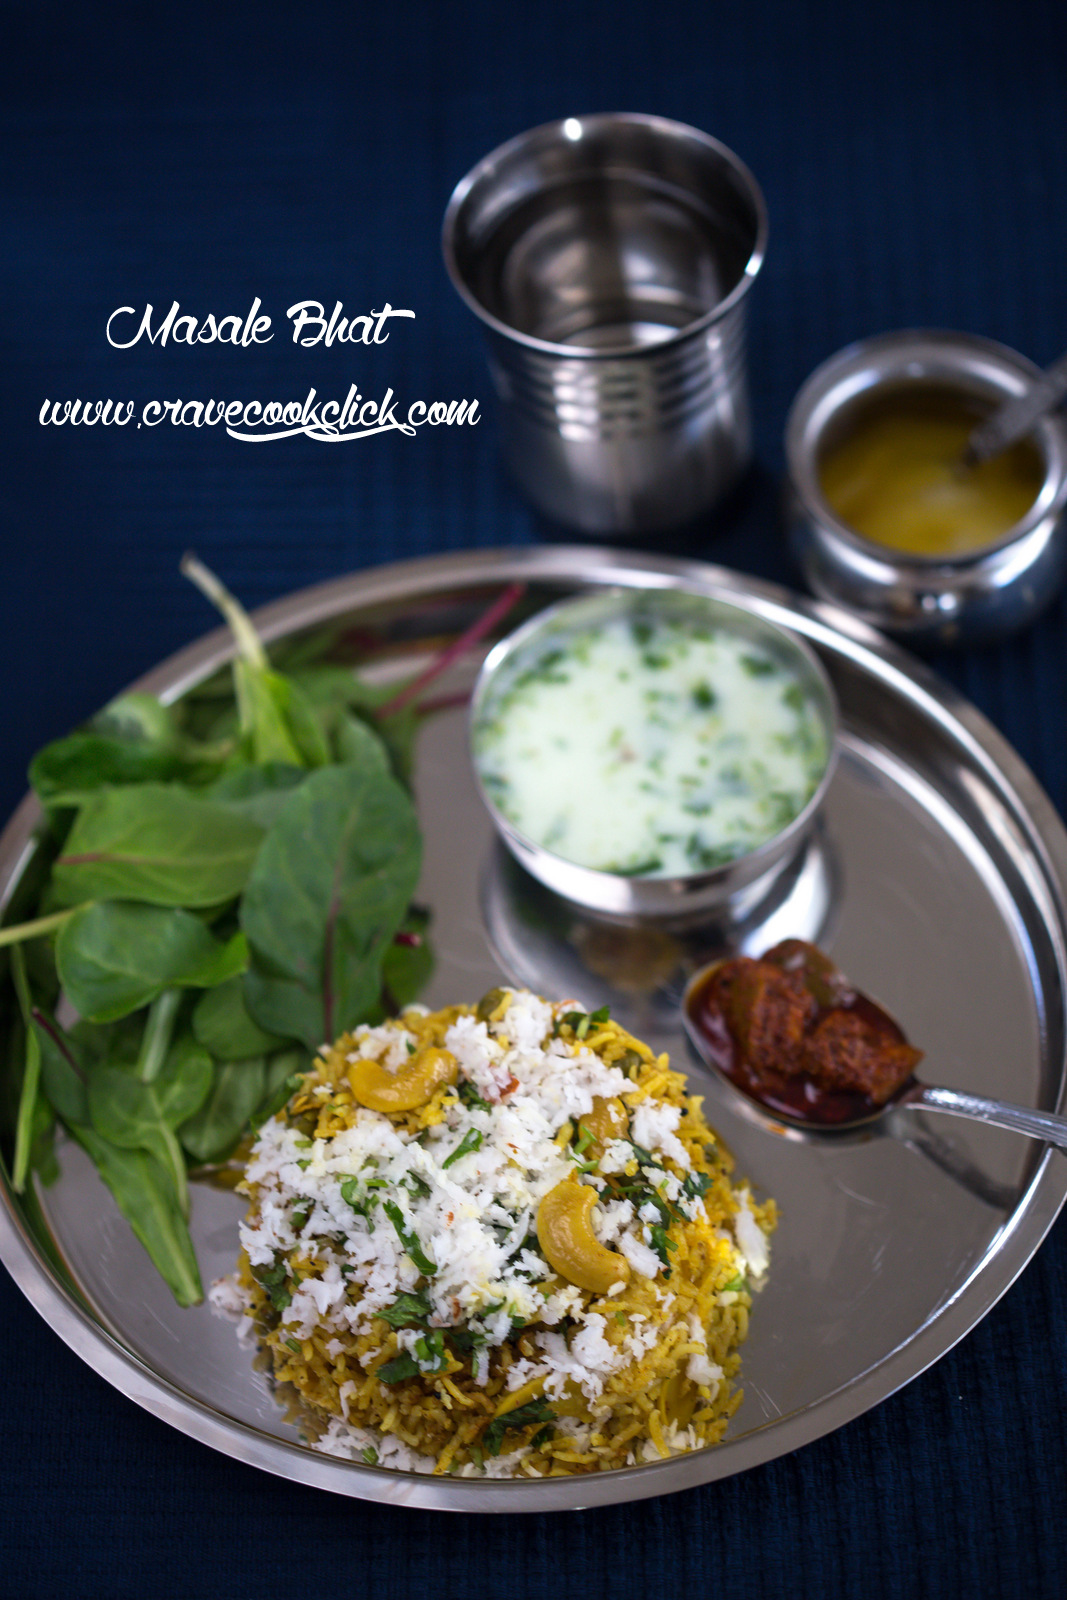 masale bhat recipe, how to make masale bhat, veg rice recipe, maharashtrian recipes, indian rice recipes, spicy rice recipe, marathi recipes, vangi bhat, phodnicha bhat, wedding recipes, food photography, food porn, food blogger, food photographer, matha recipe, buttermilk